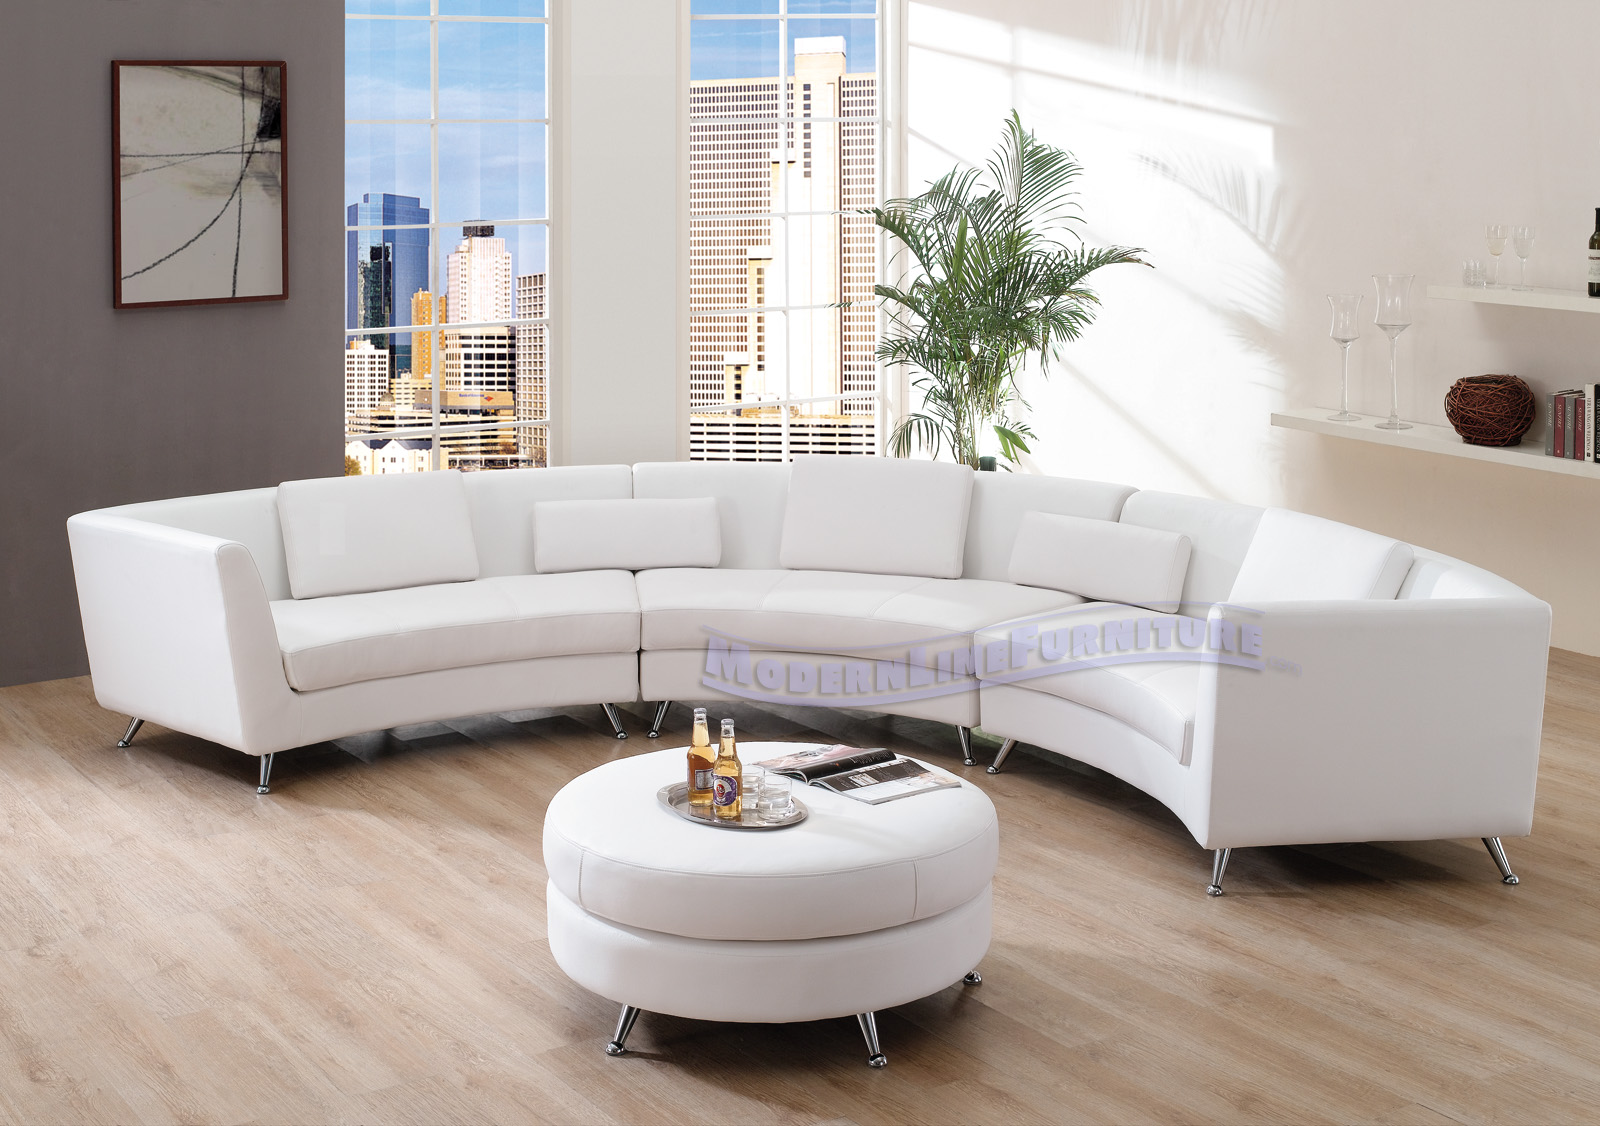 Modern Line Furniture Commercial Furniture Custom Made  ~ Curved Contemporary Sofa